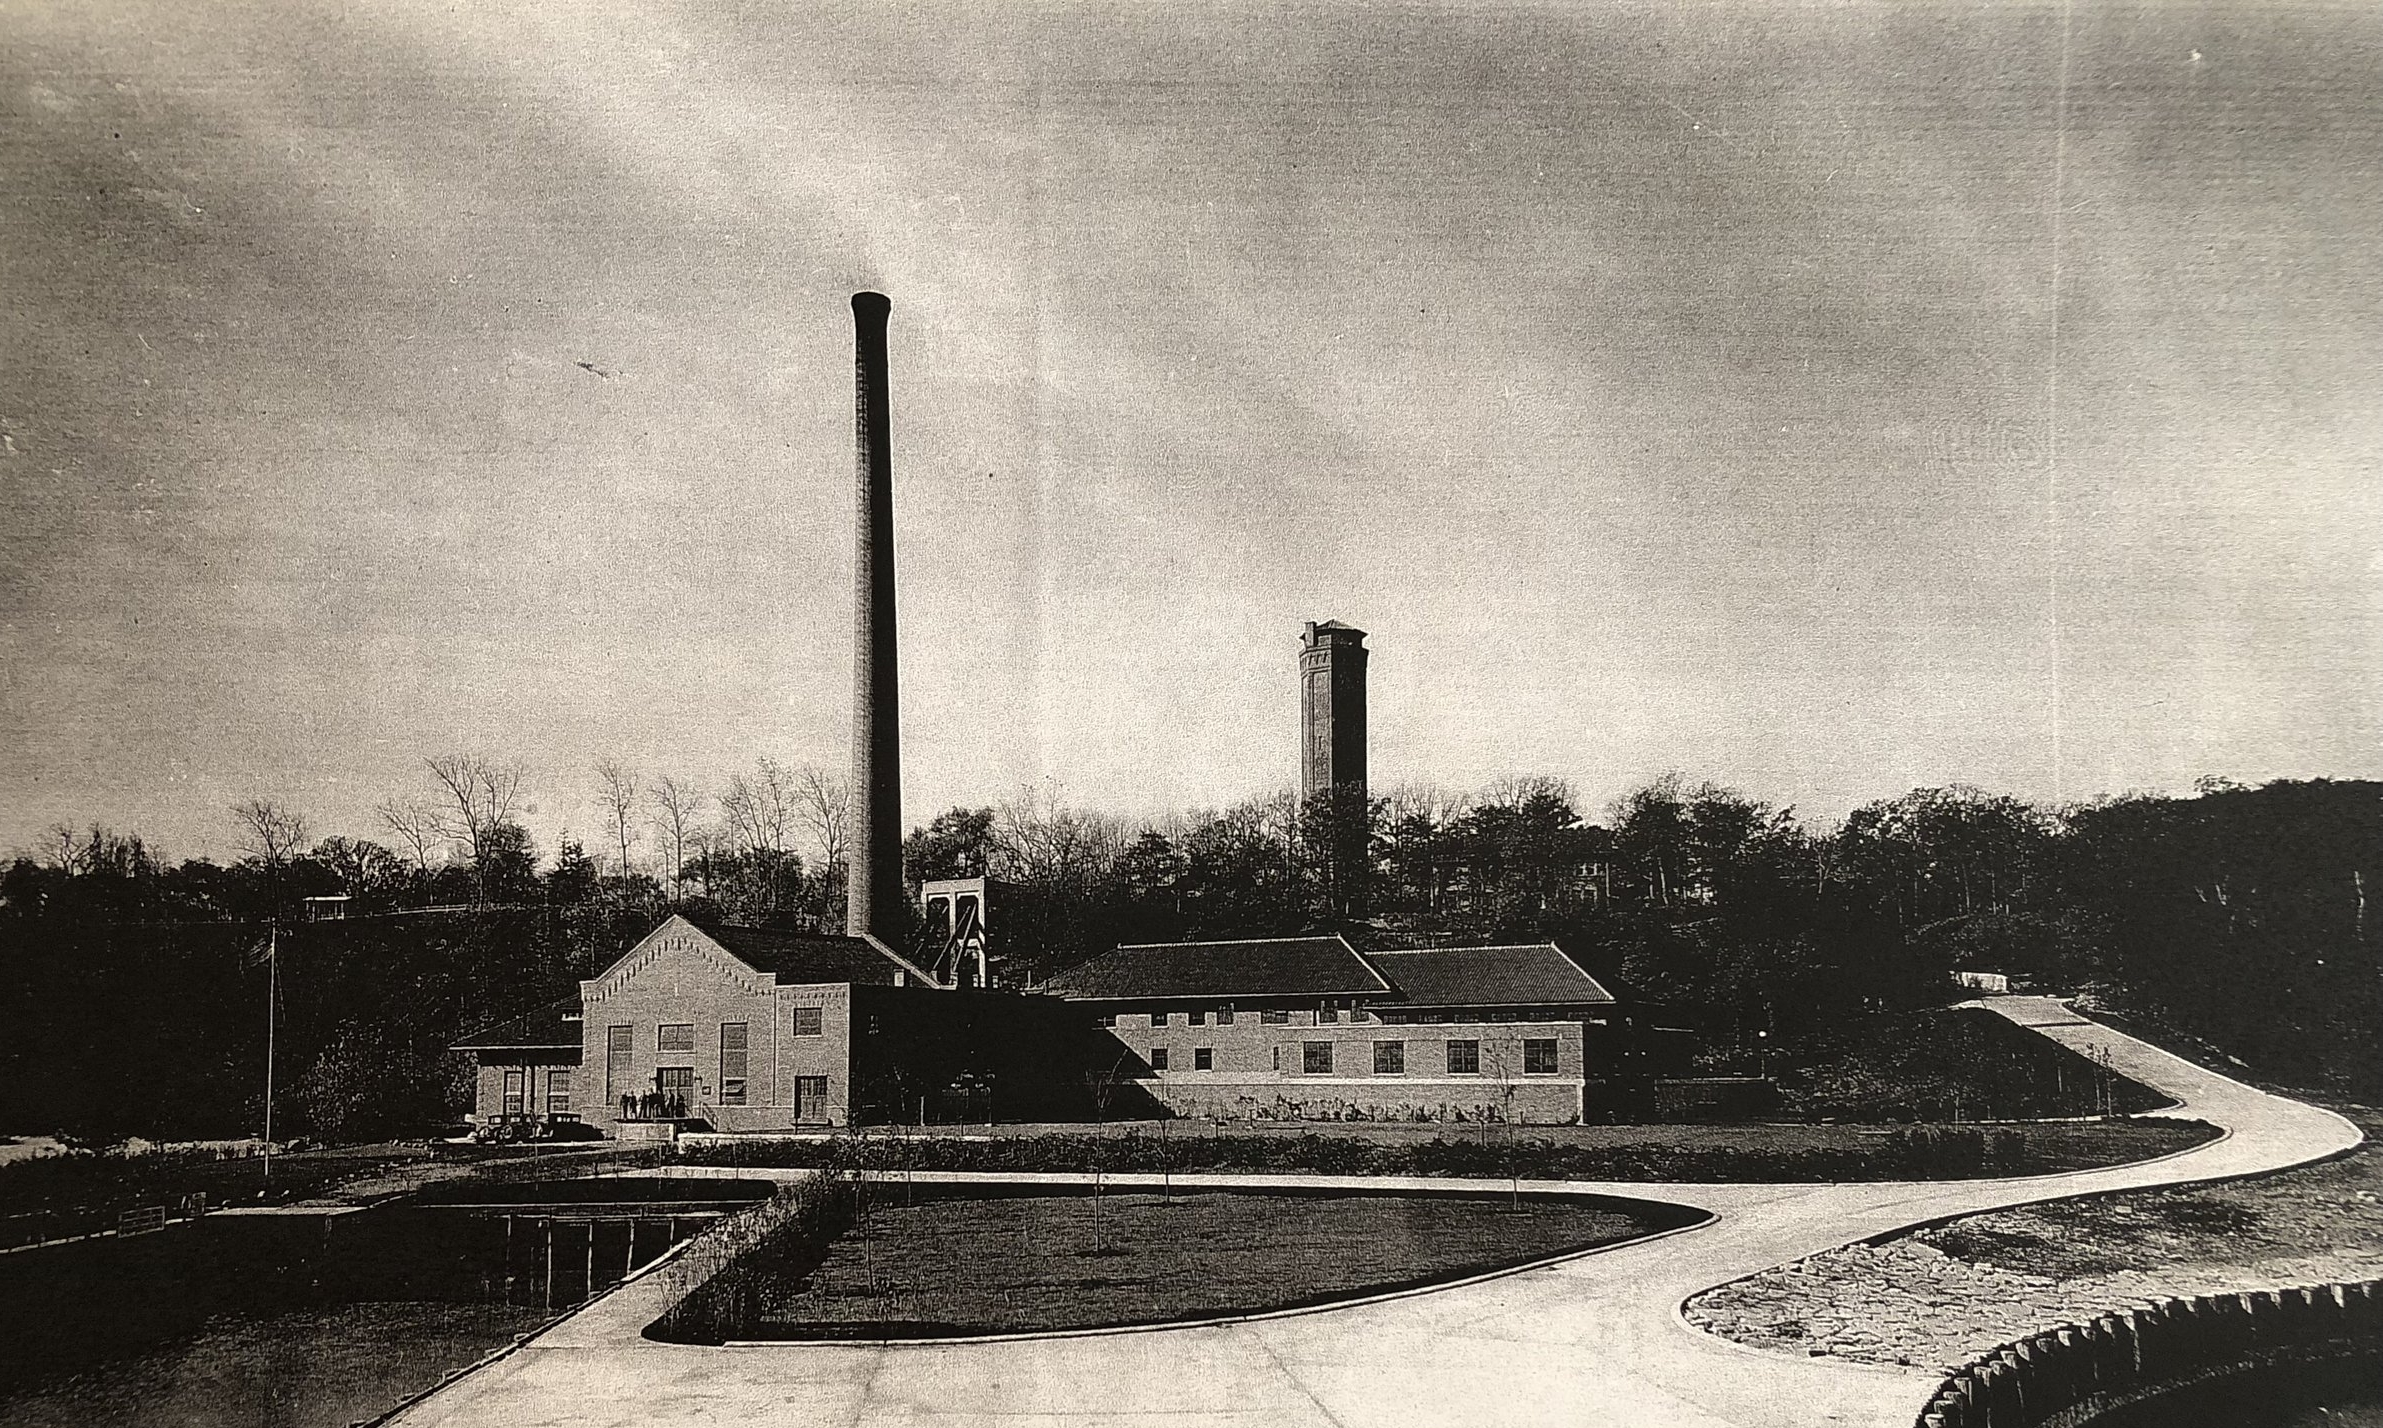 1900 - The Village's Electric Plant Begins Operation -